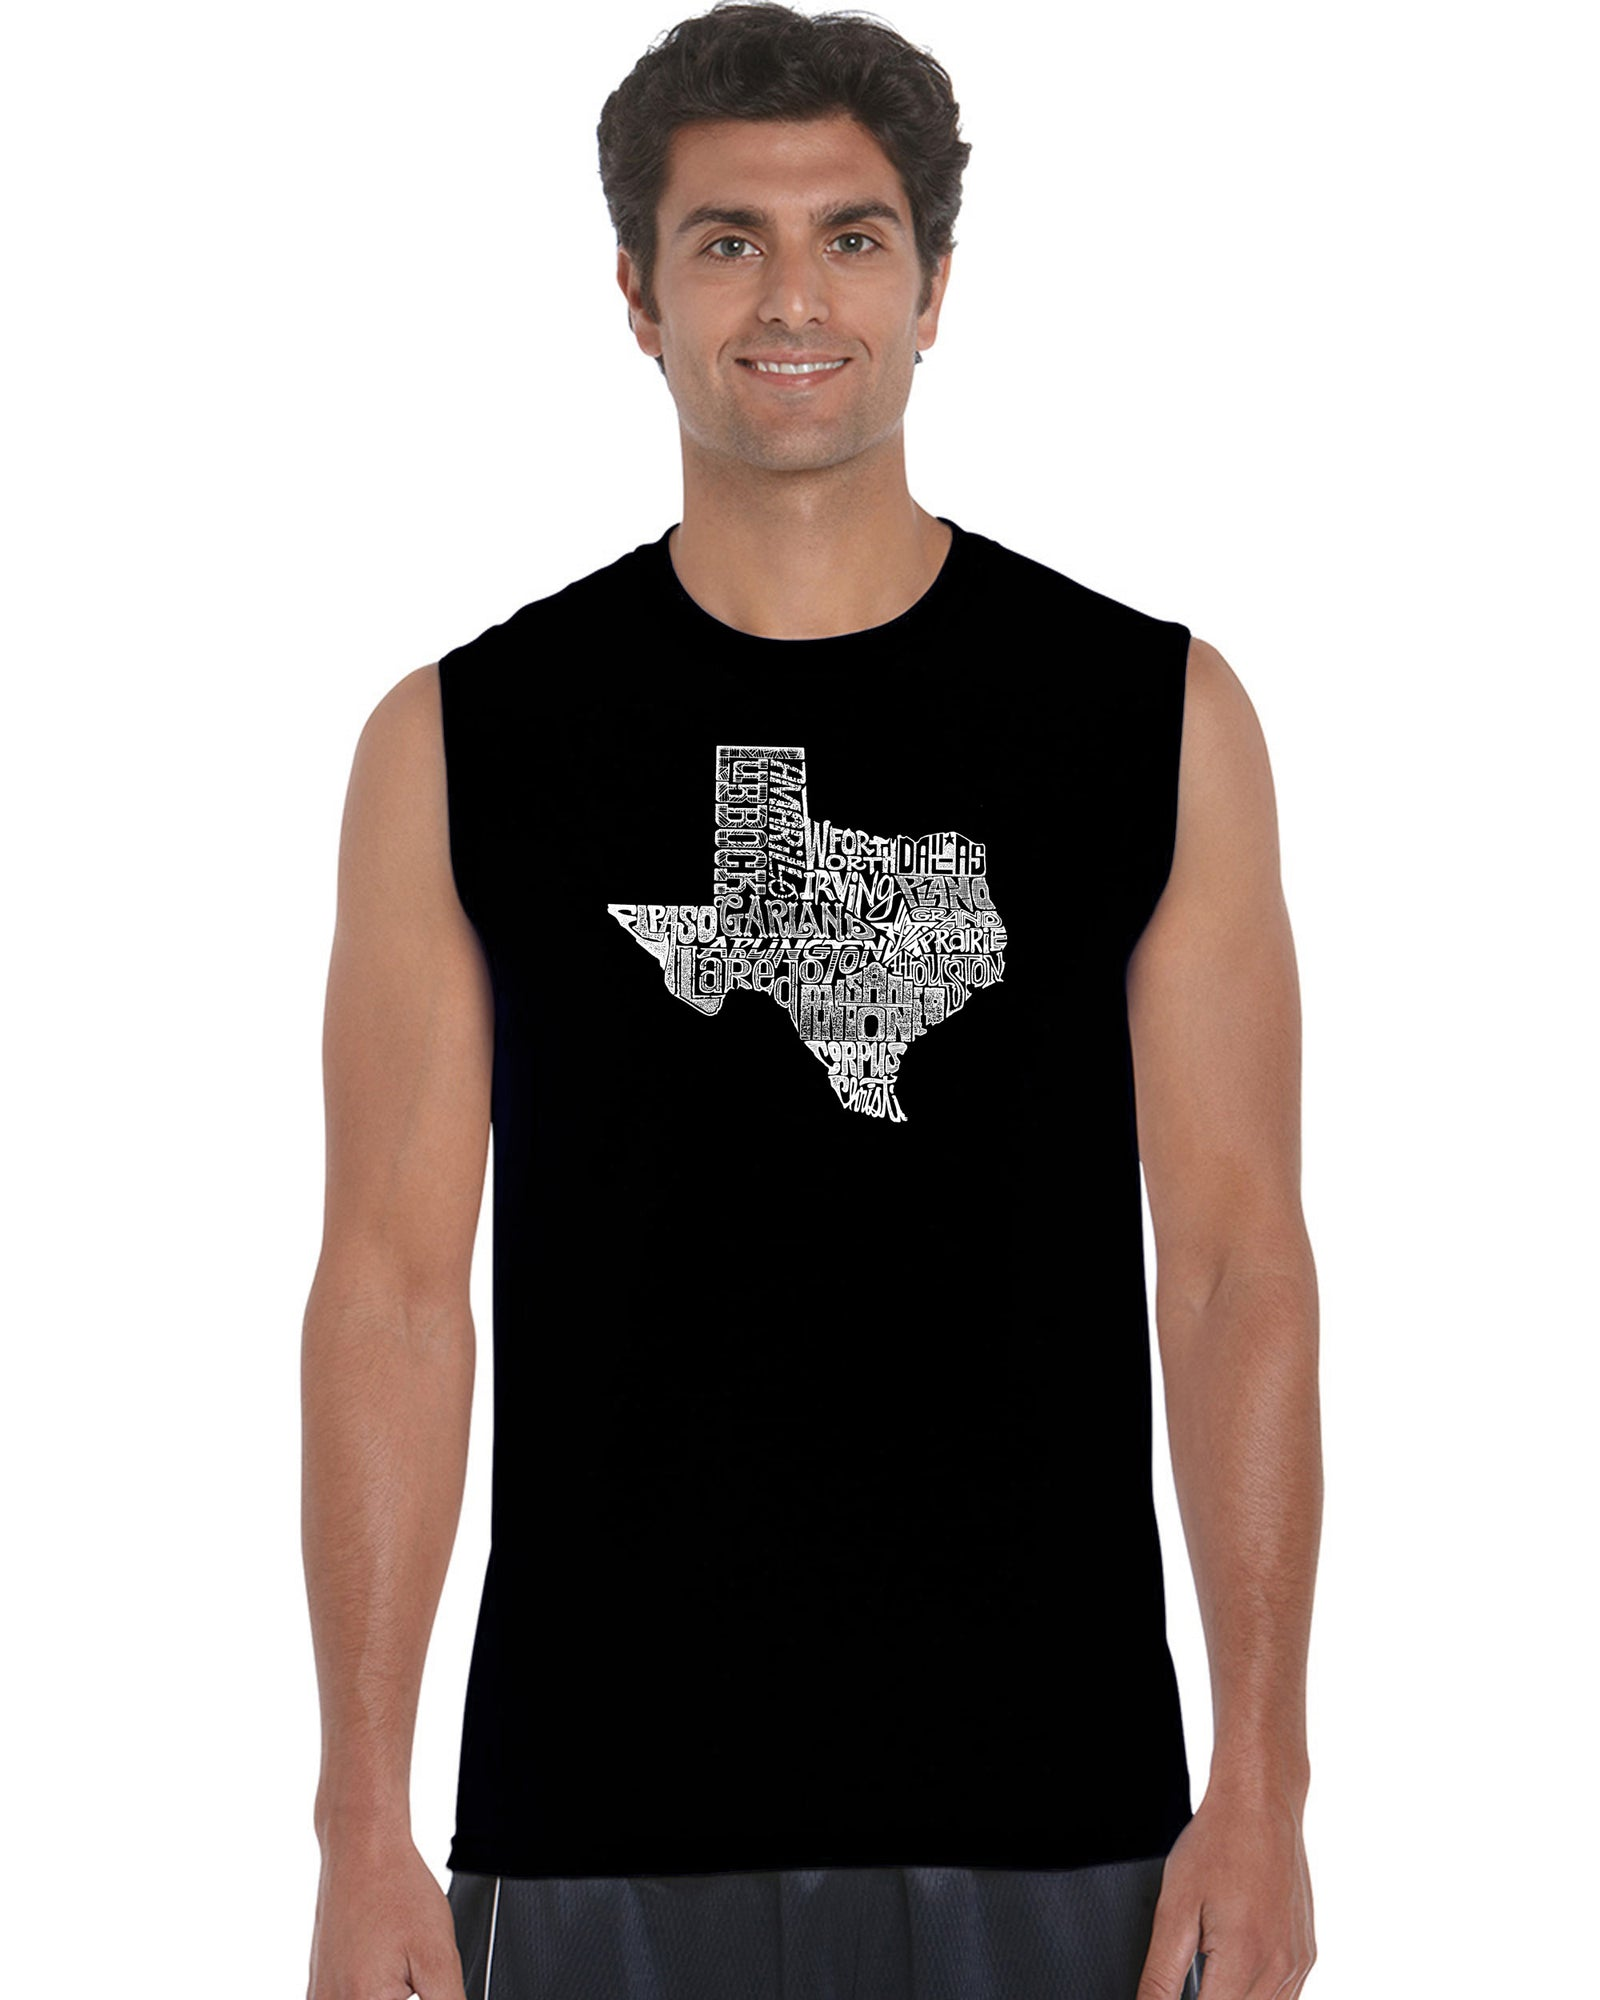 Men's Sleeveless T-shirt - The Great State of Texas